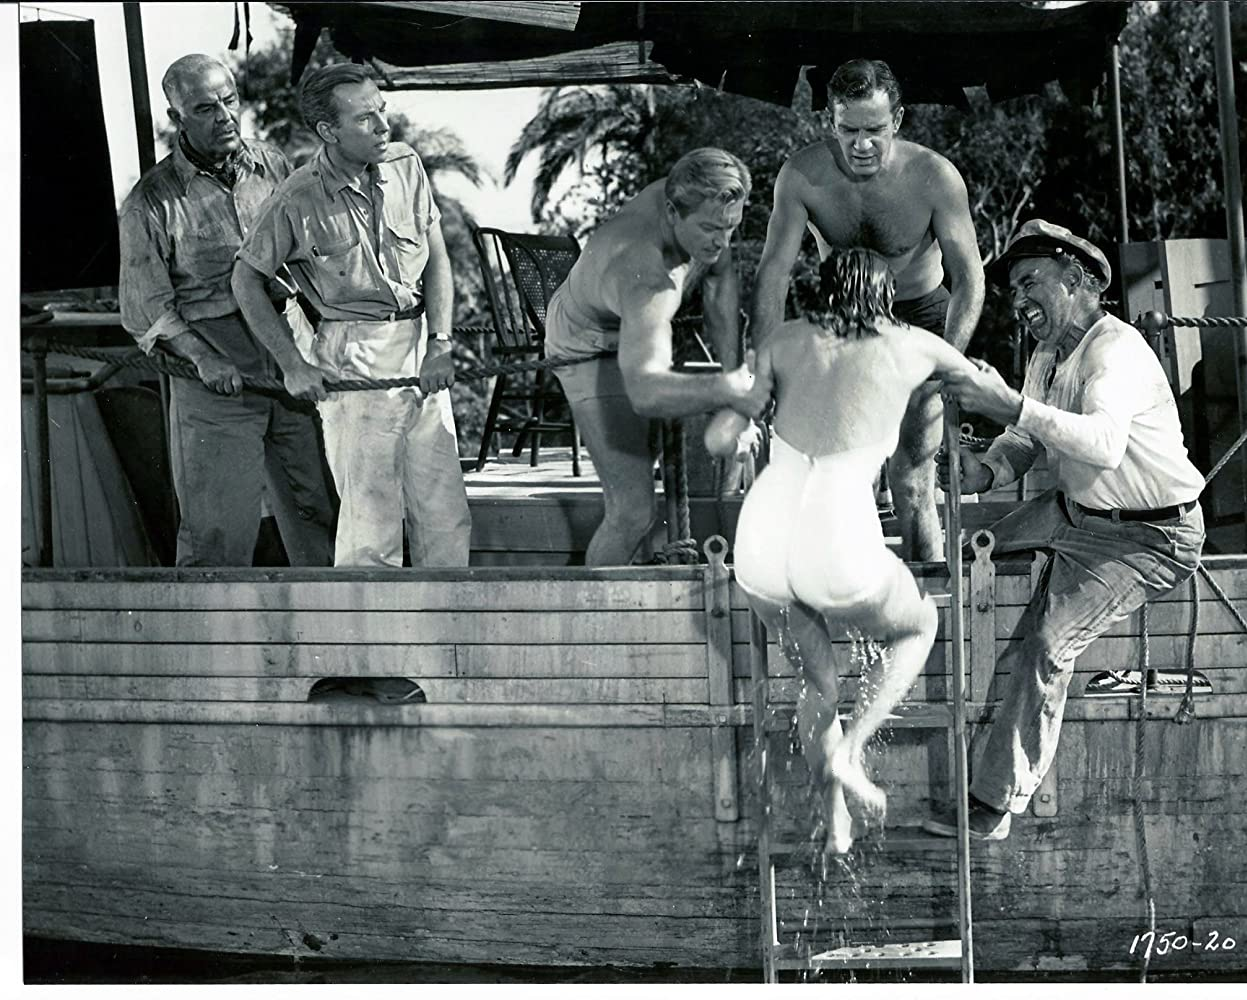 Whit Bissell, Julie Adams, Richard Carlson, Richard Denning, Antonio Moreno, and Nestor Paiva in Creature from the Black Lagoon (1954)